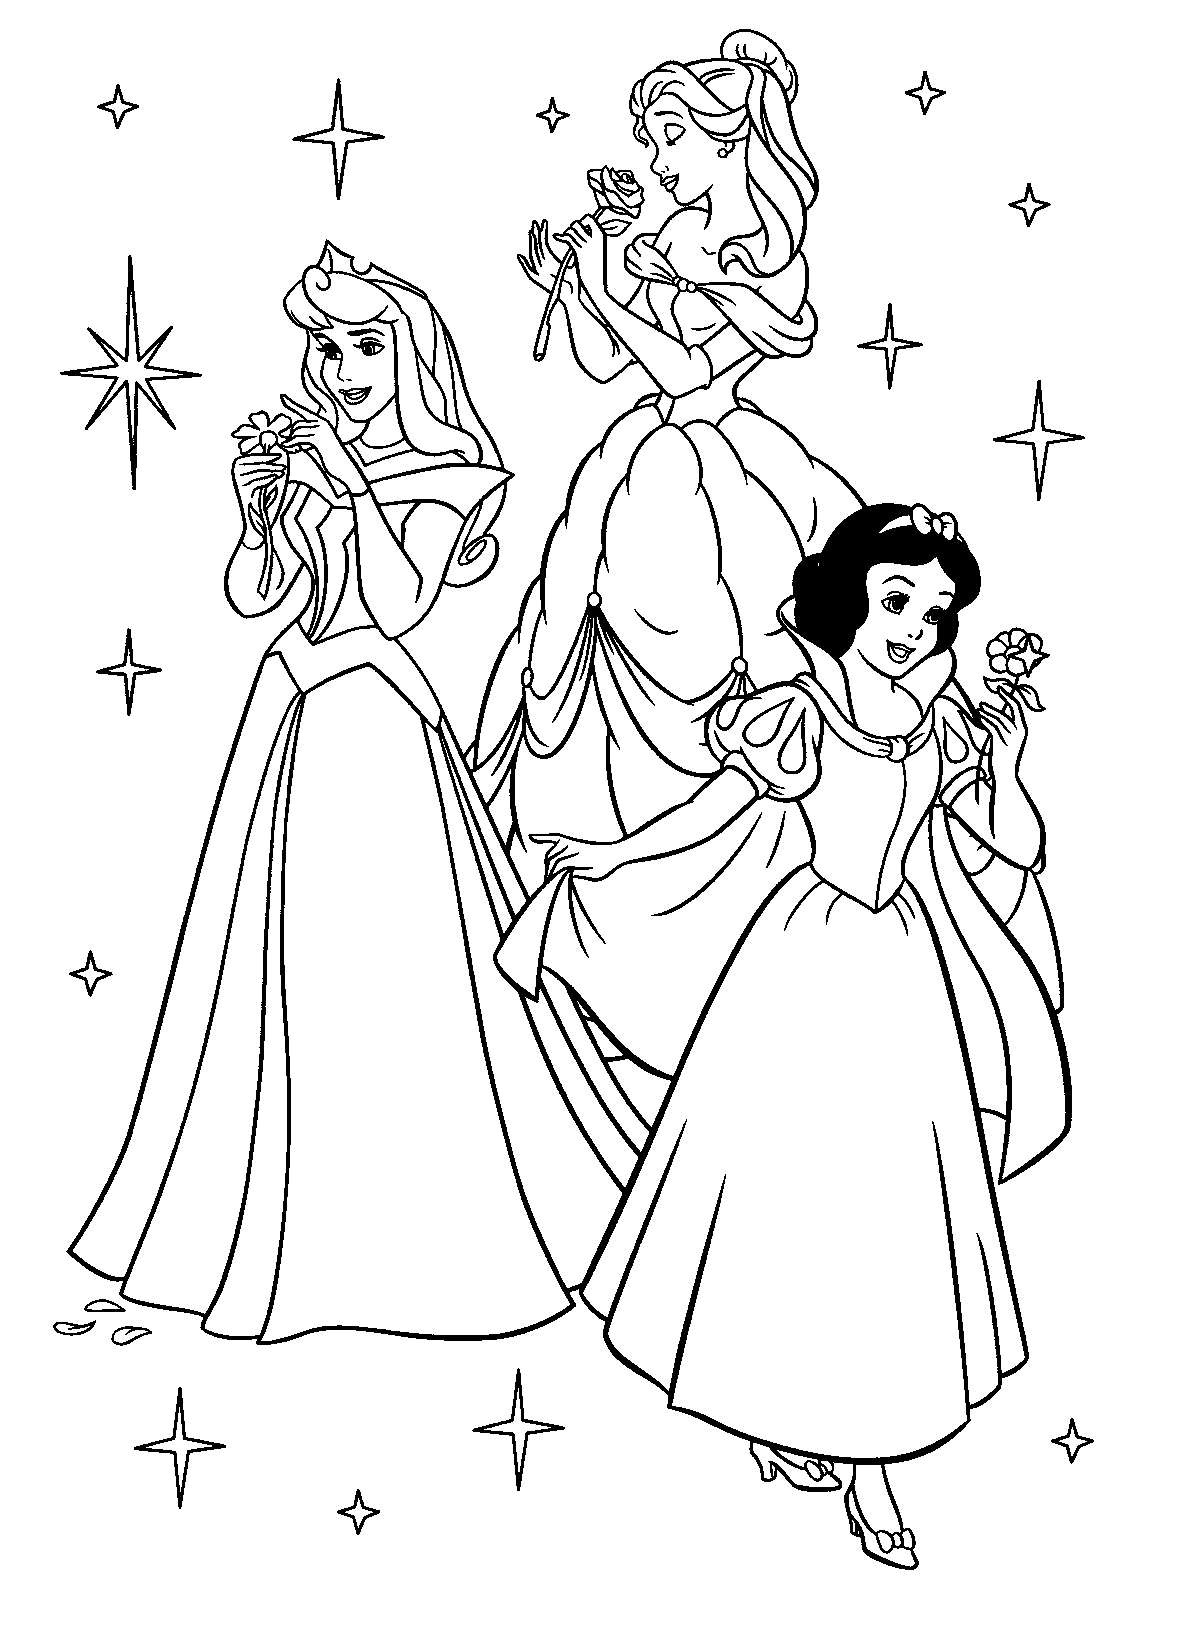 Princess coloring book pages - Disney Princess Coloring Pages